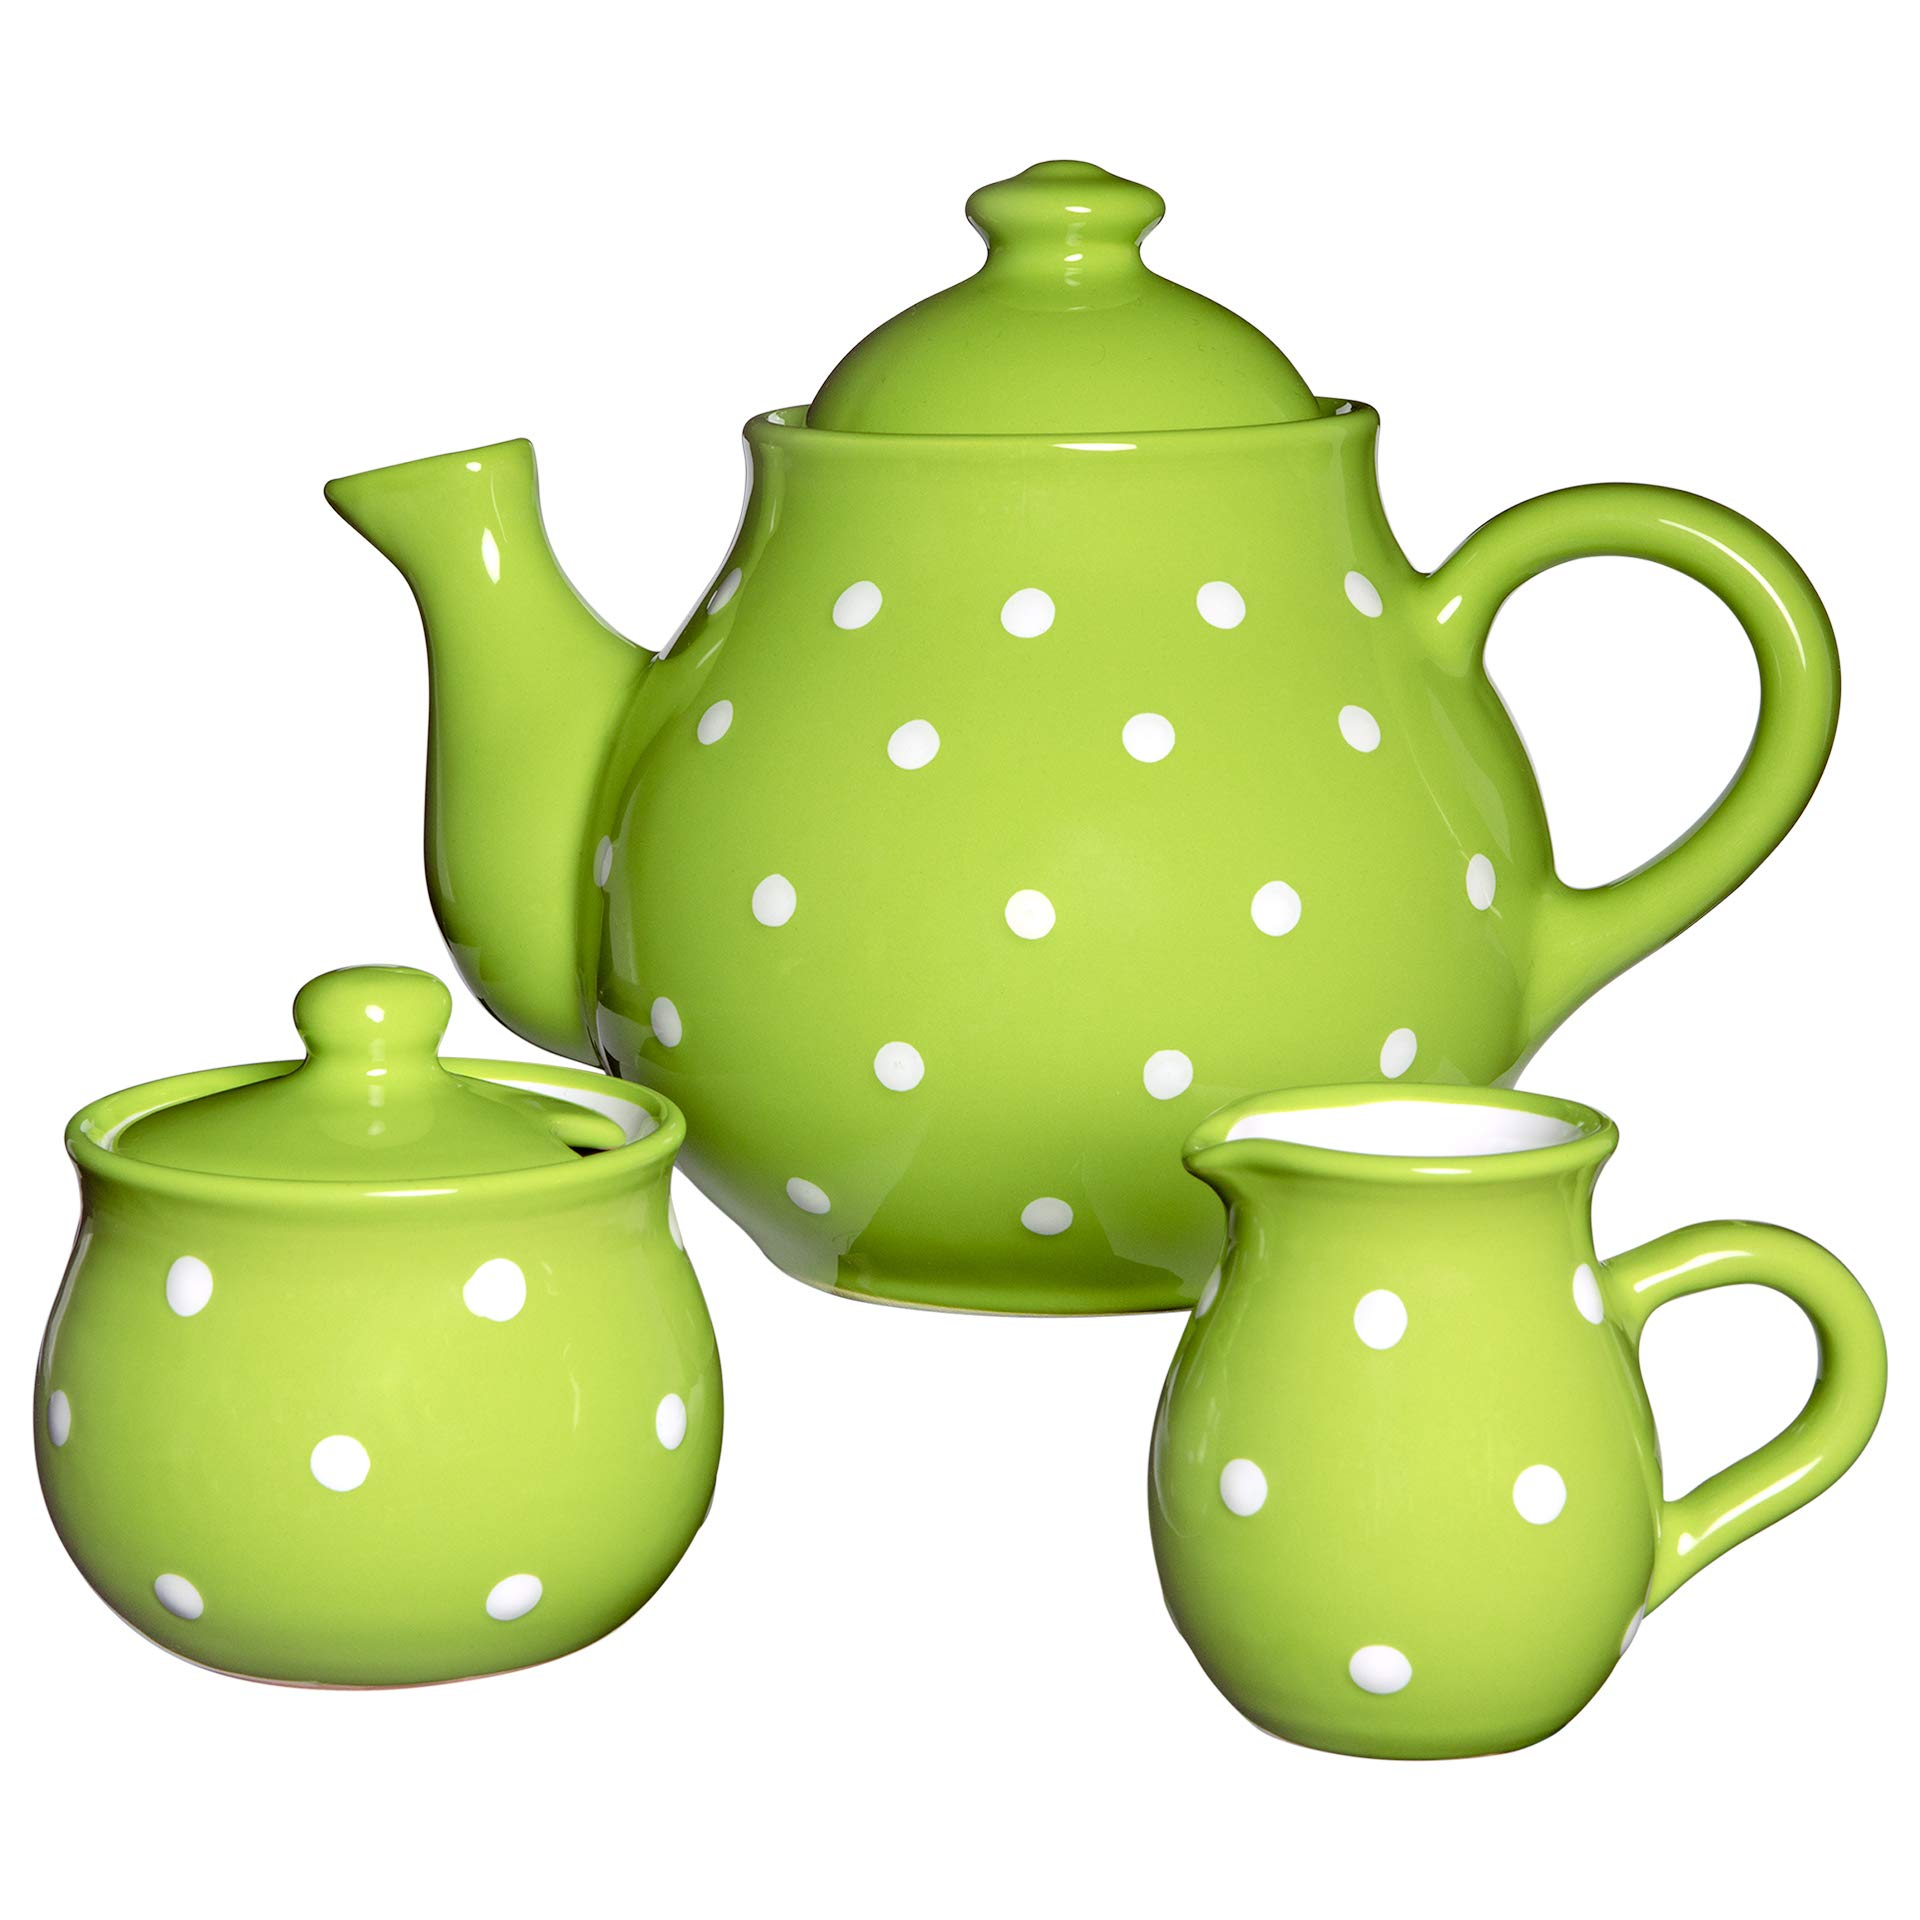 City to Cottage Handmade Lime Green and White Polka Dot Large Ceramic 1,7l/60oz/4-6 Cup Teapot, Milk Jug, Sugar Bowl Set, Pottery Tea Set, Housewarming Gift for Tea Lovers